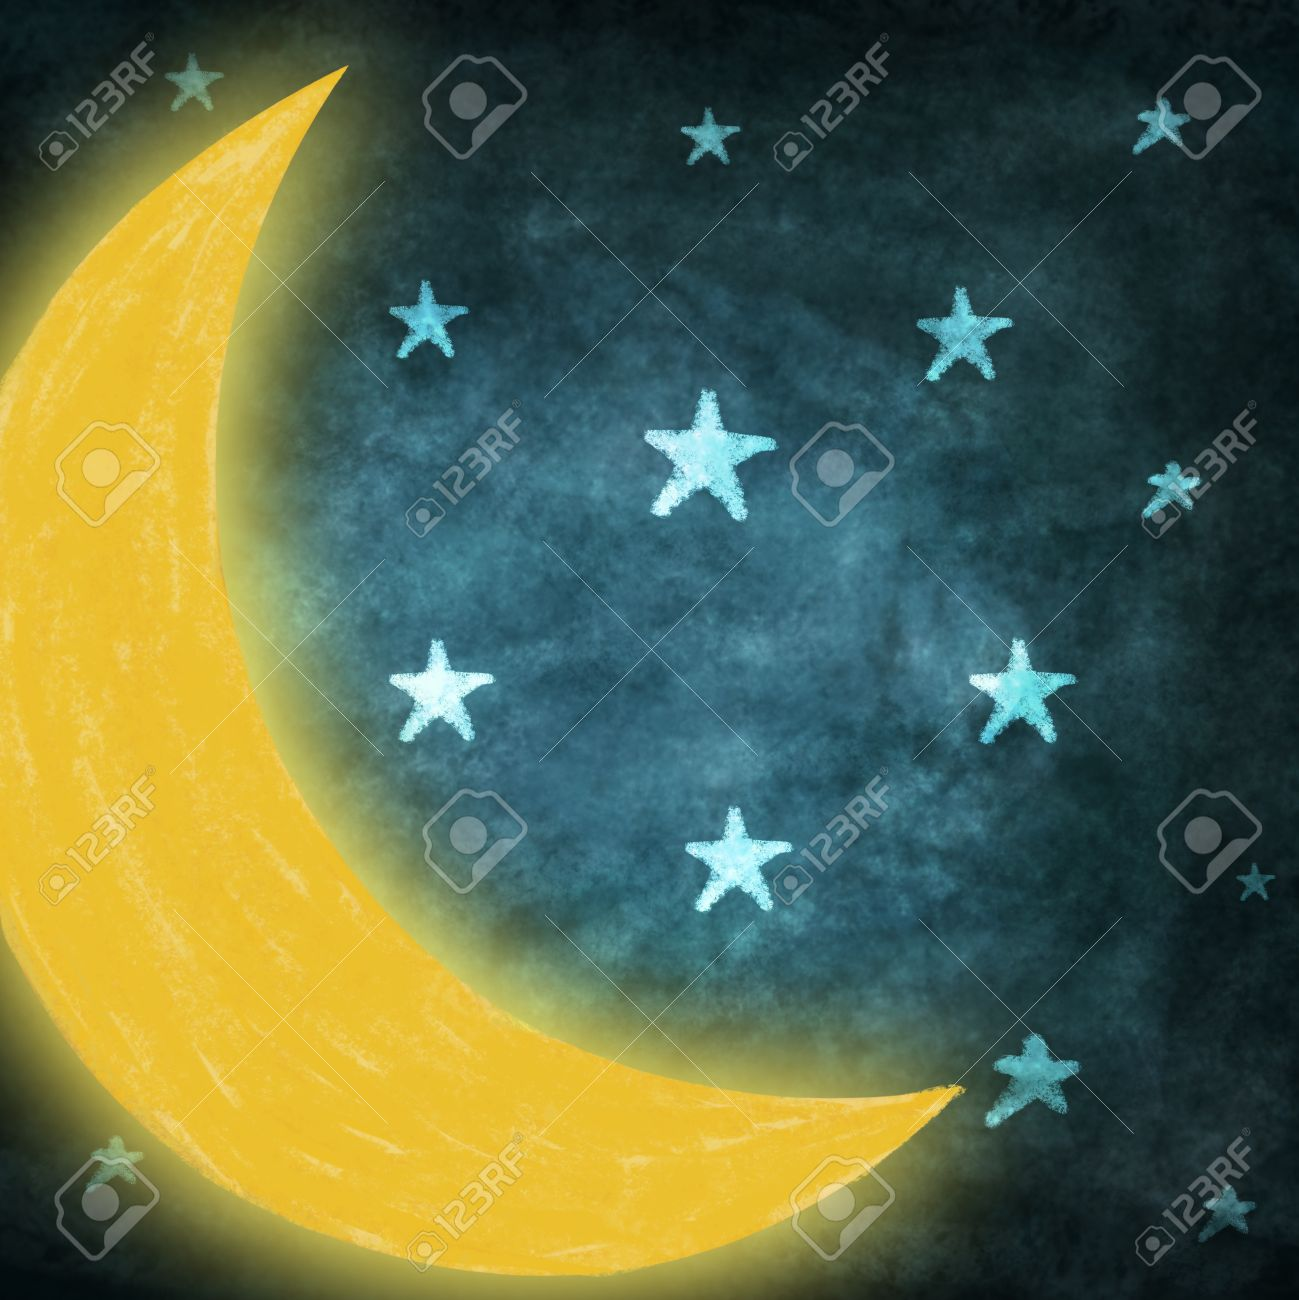 1299x1300 Night Time With Stars Moon Drawing Stock Photo, Picture